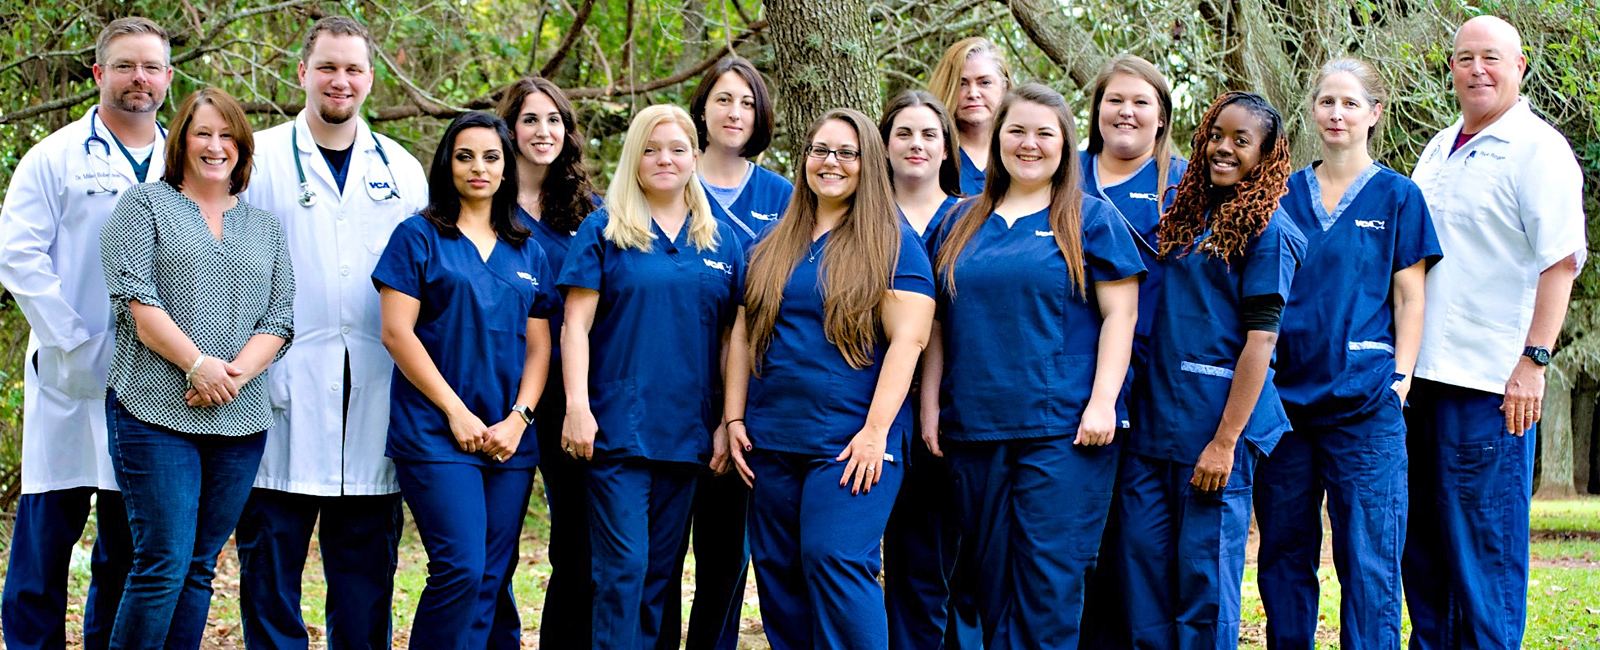 Team Picture of VCA Southwest Freeway Animal Hospital